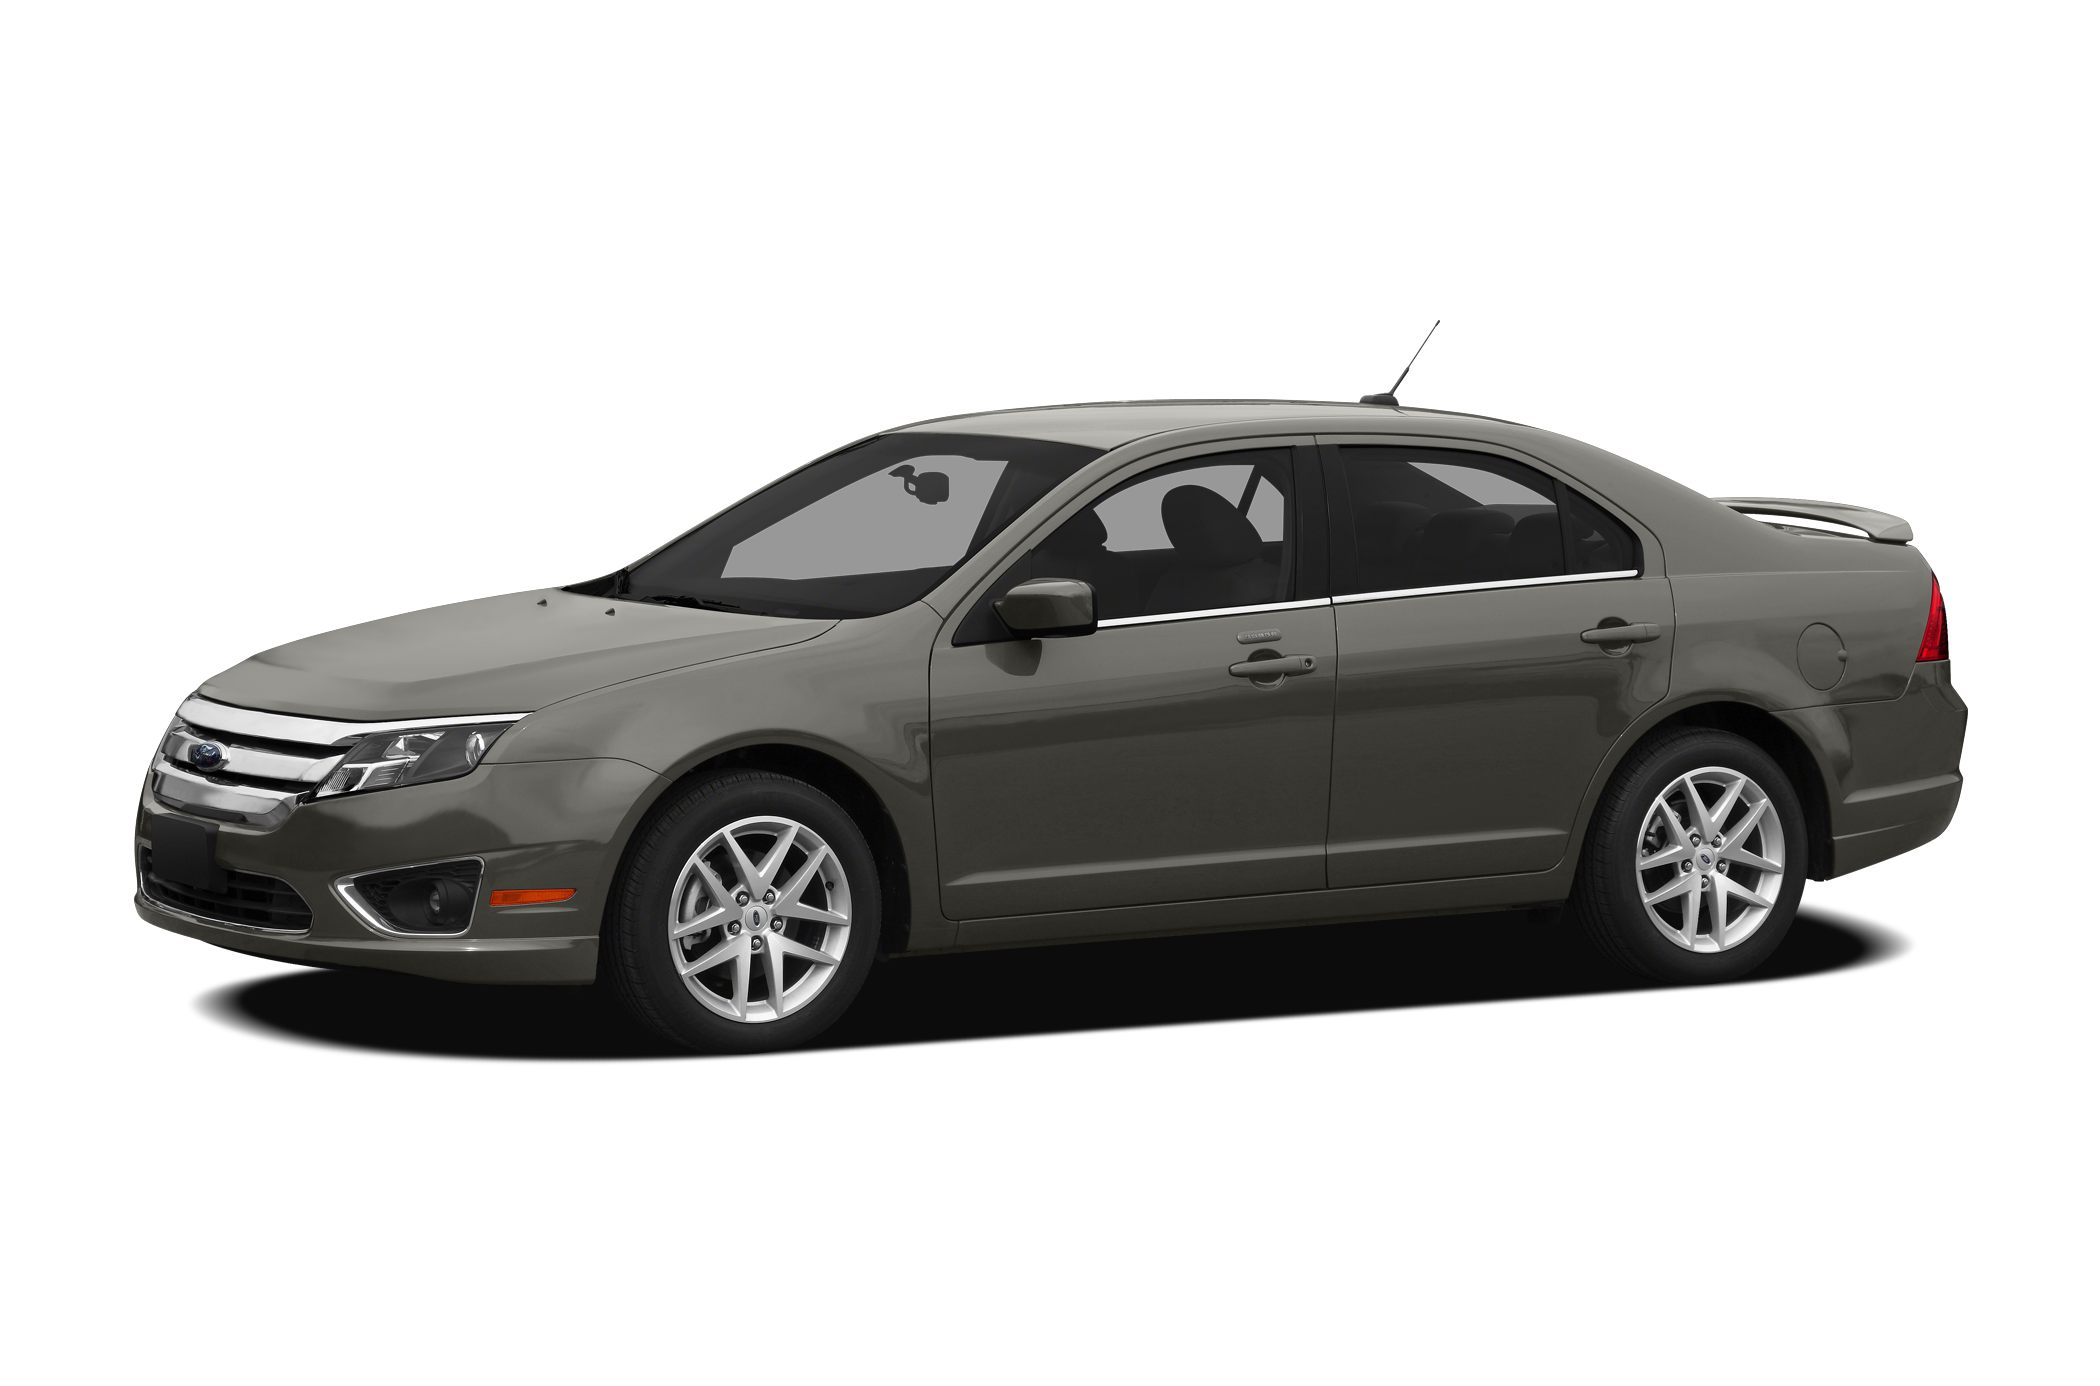 2012 Ford Fusion SEL Sedan for sale in YPSILANTI for $17,981 with 22,043 miles